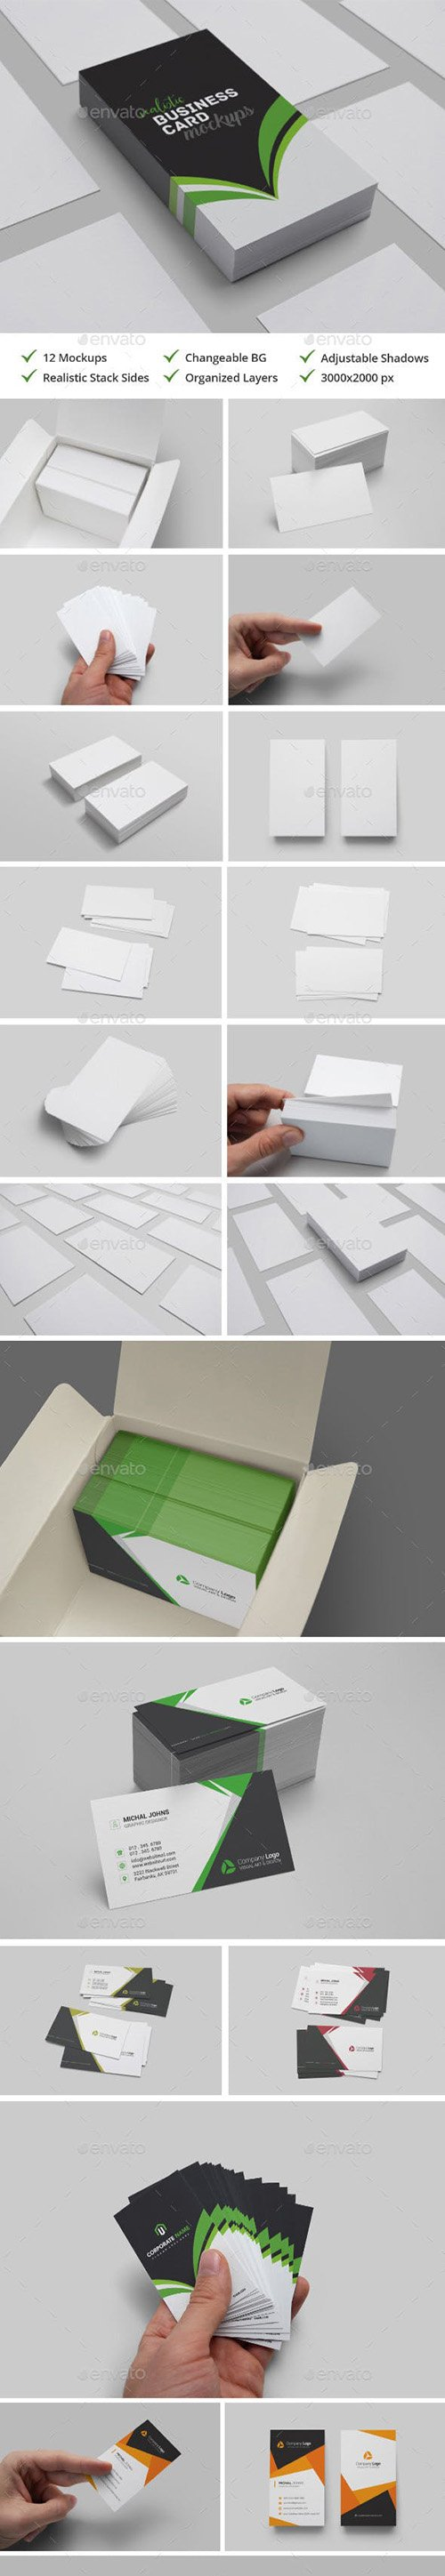 GR - Realistic Business Card Mockups 21115803